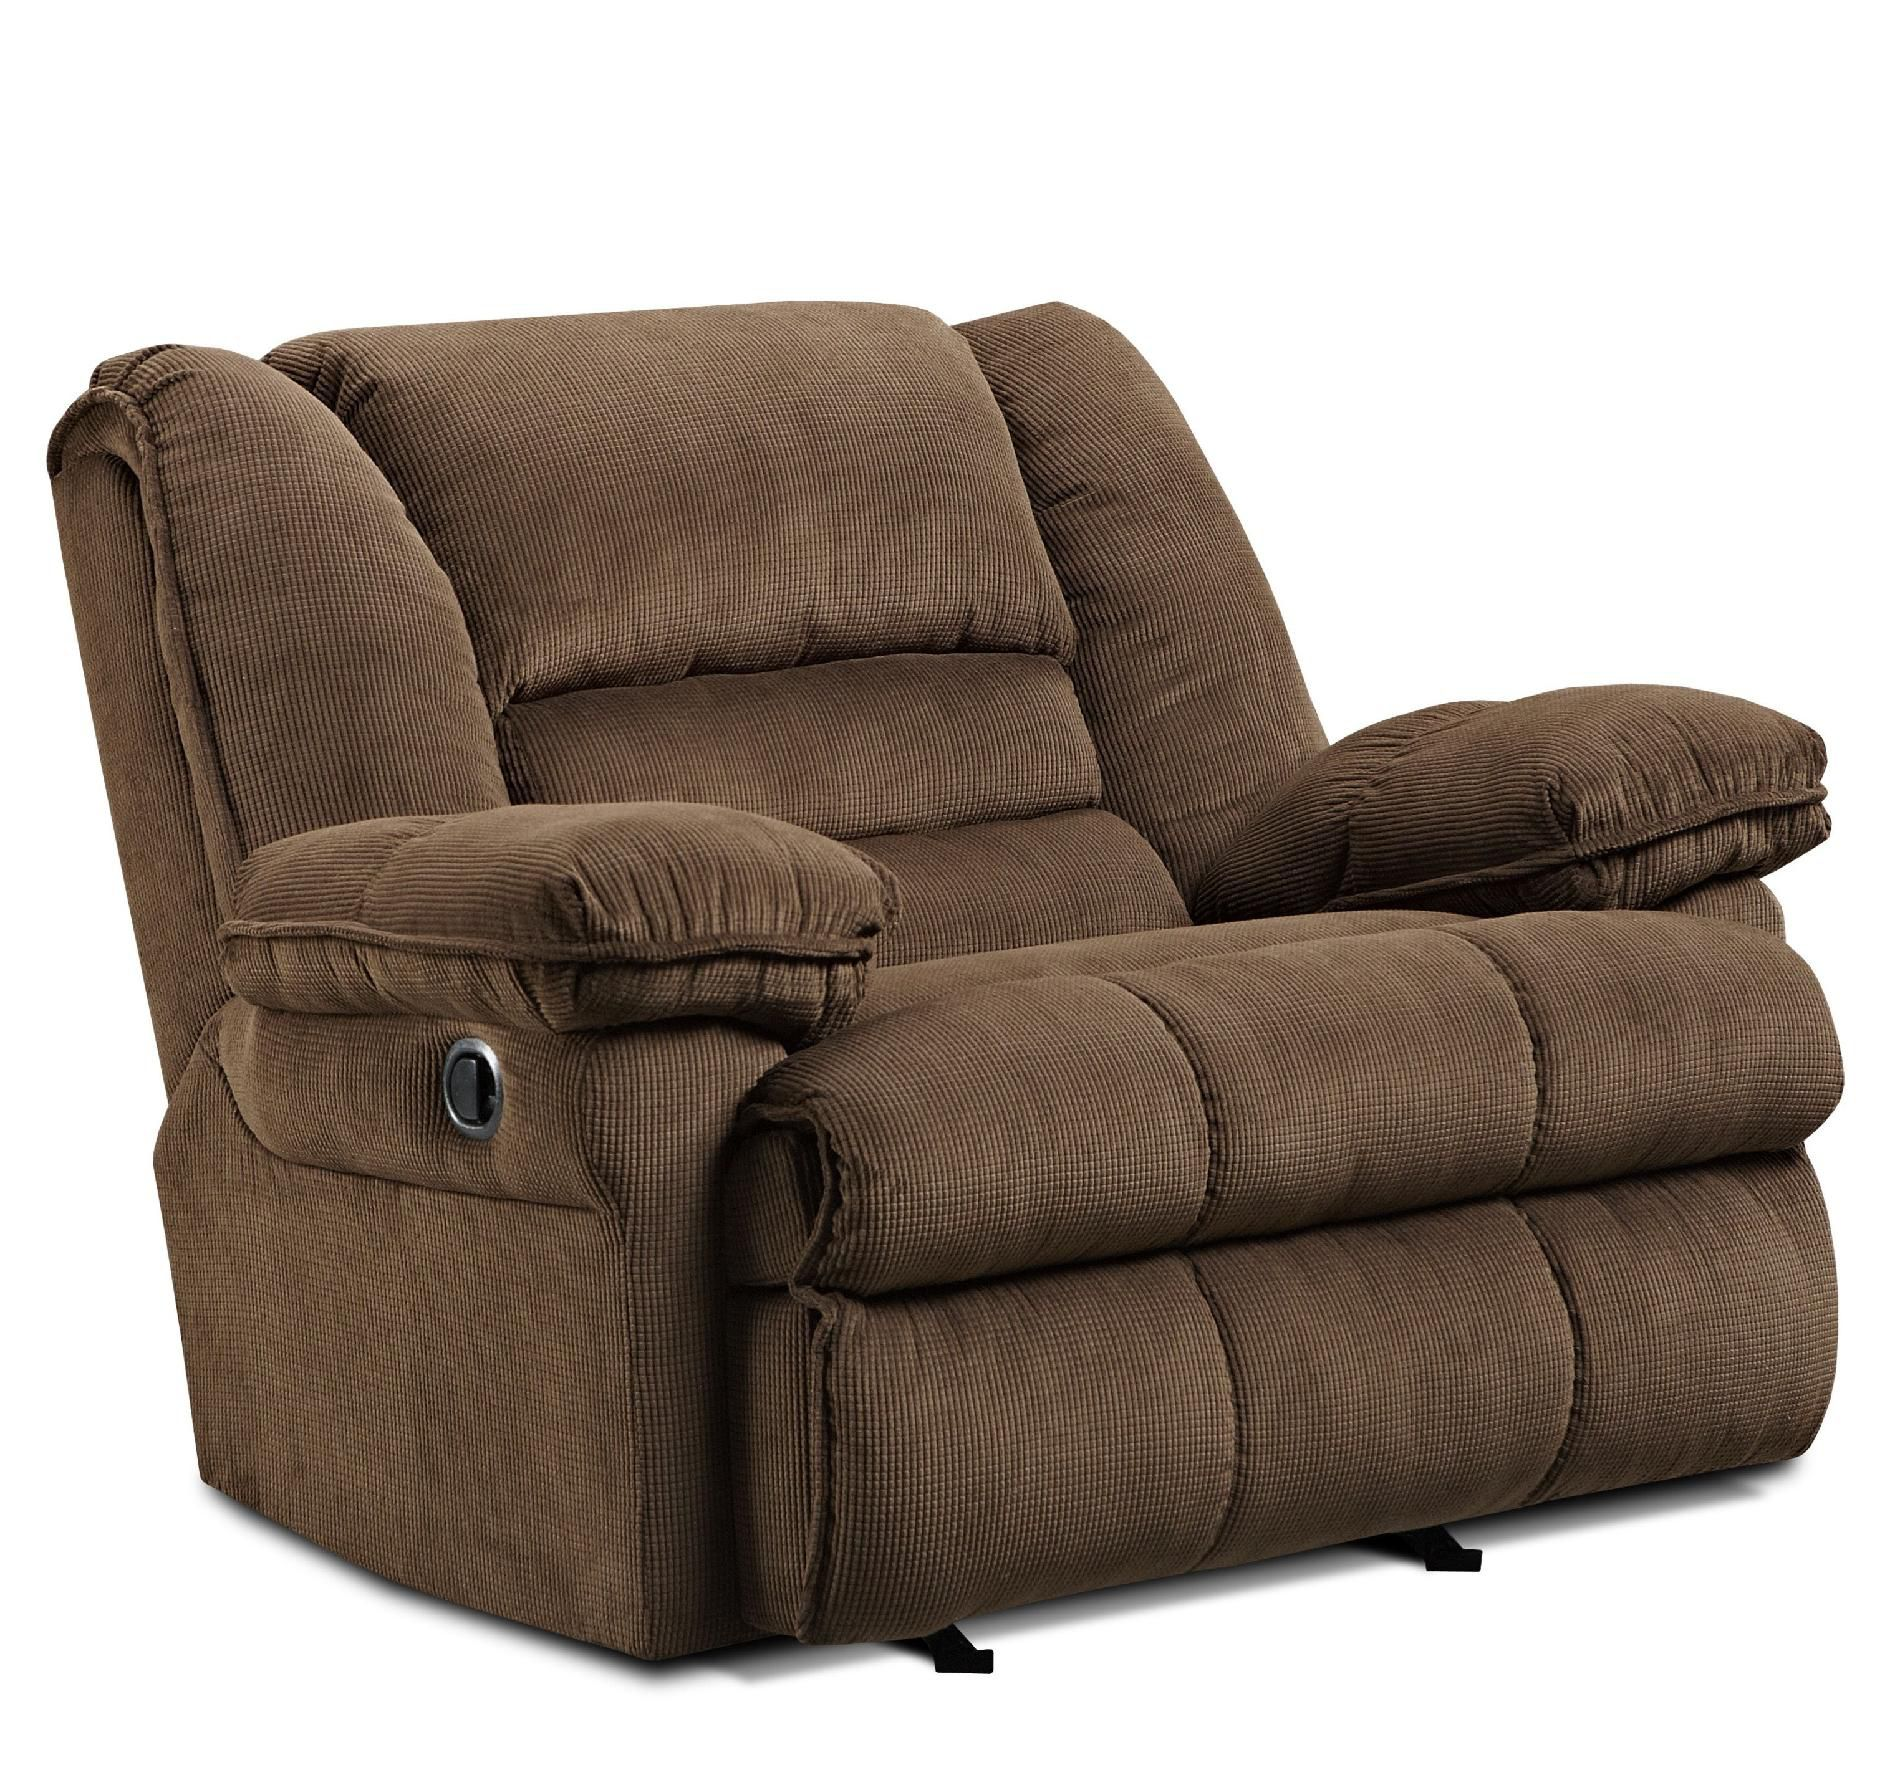 Simmons Upholstery Lancer Big Mans Recliner  Toptags